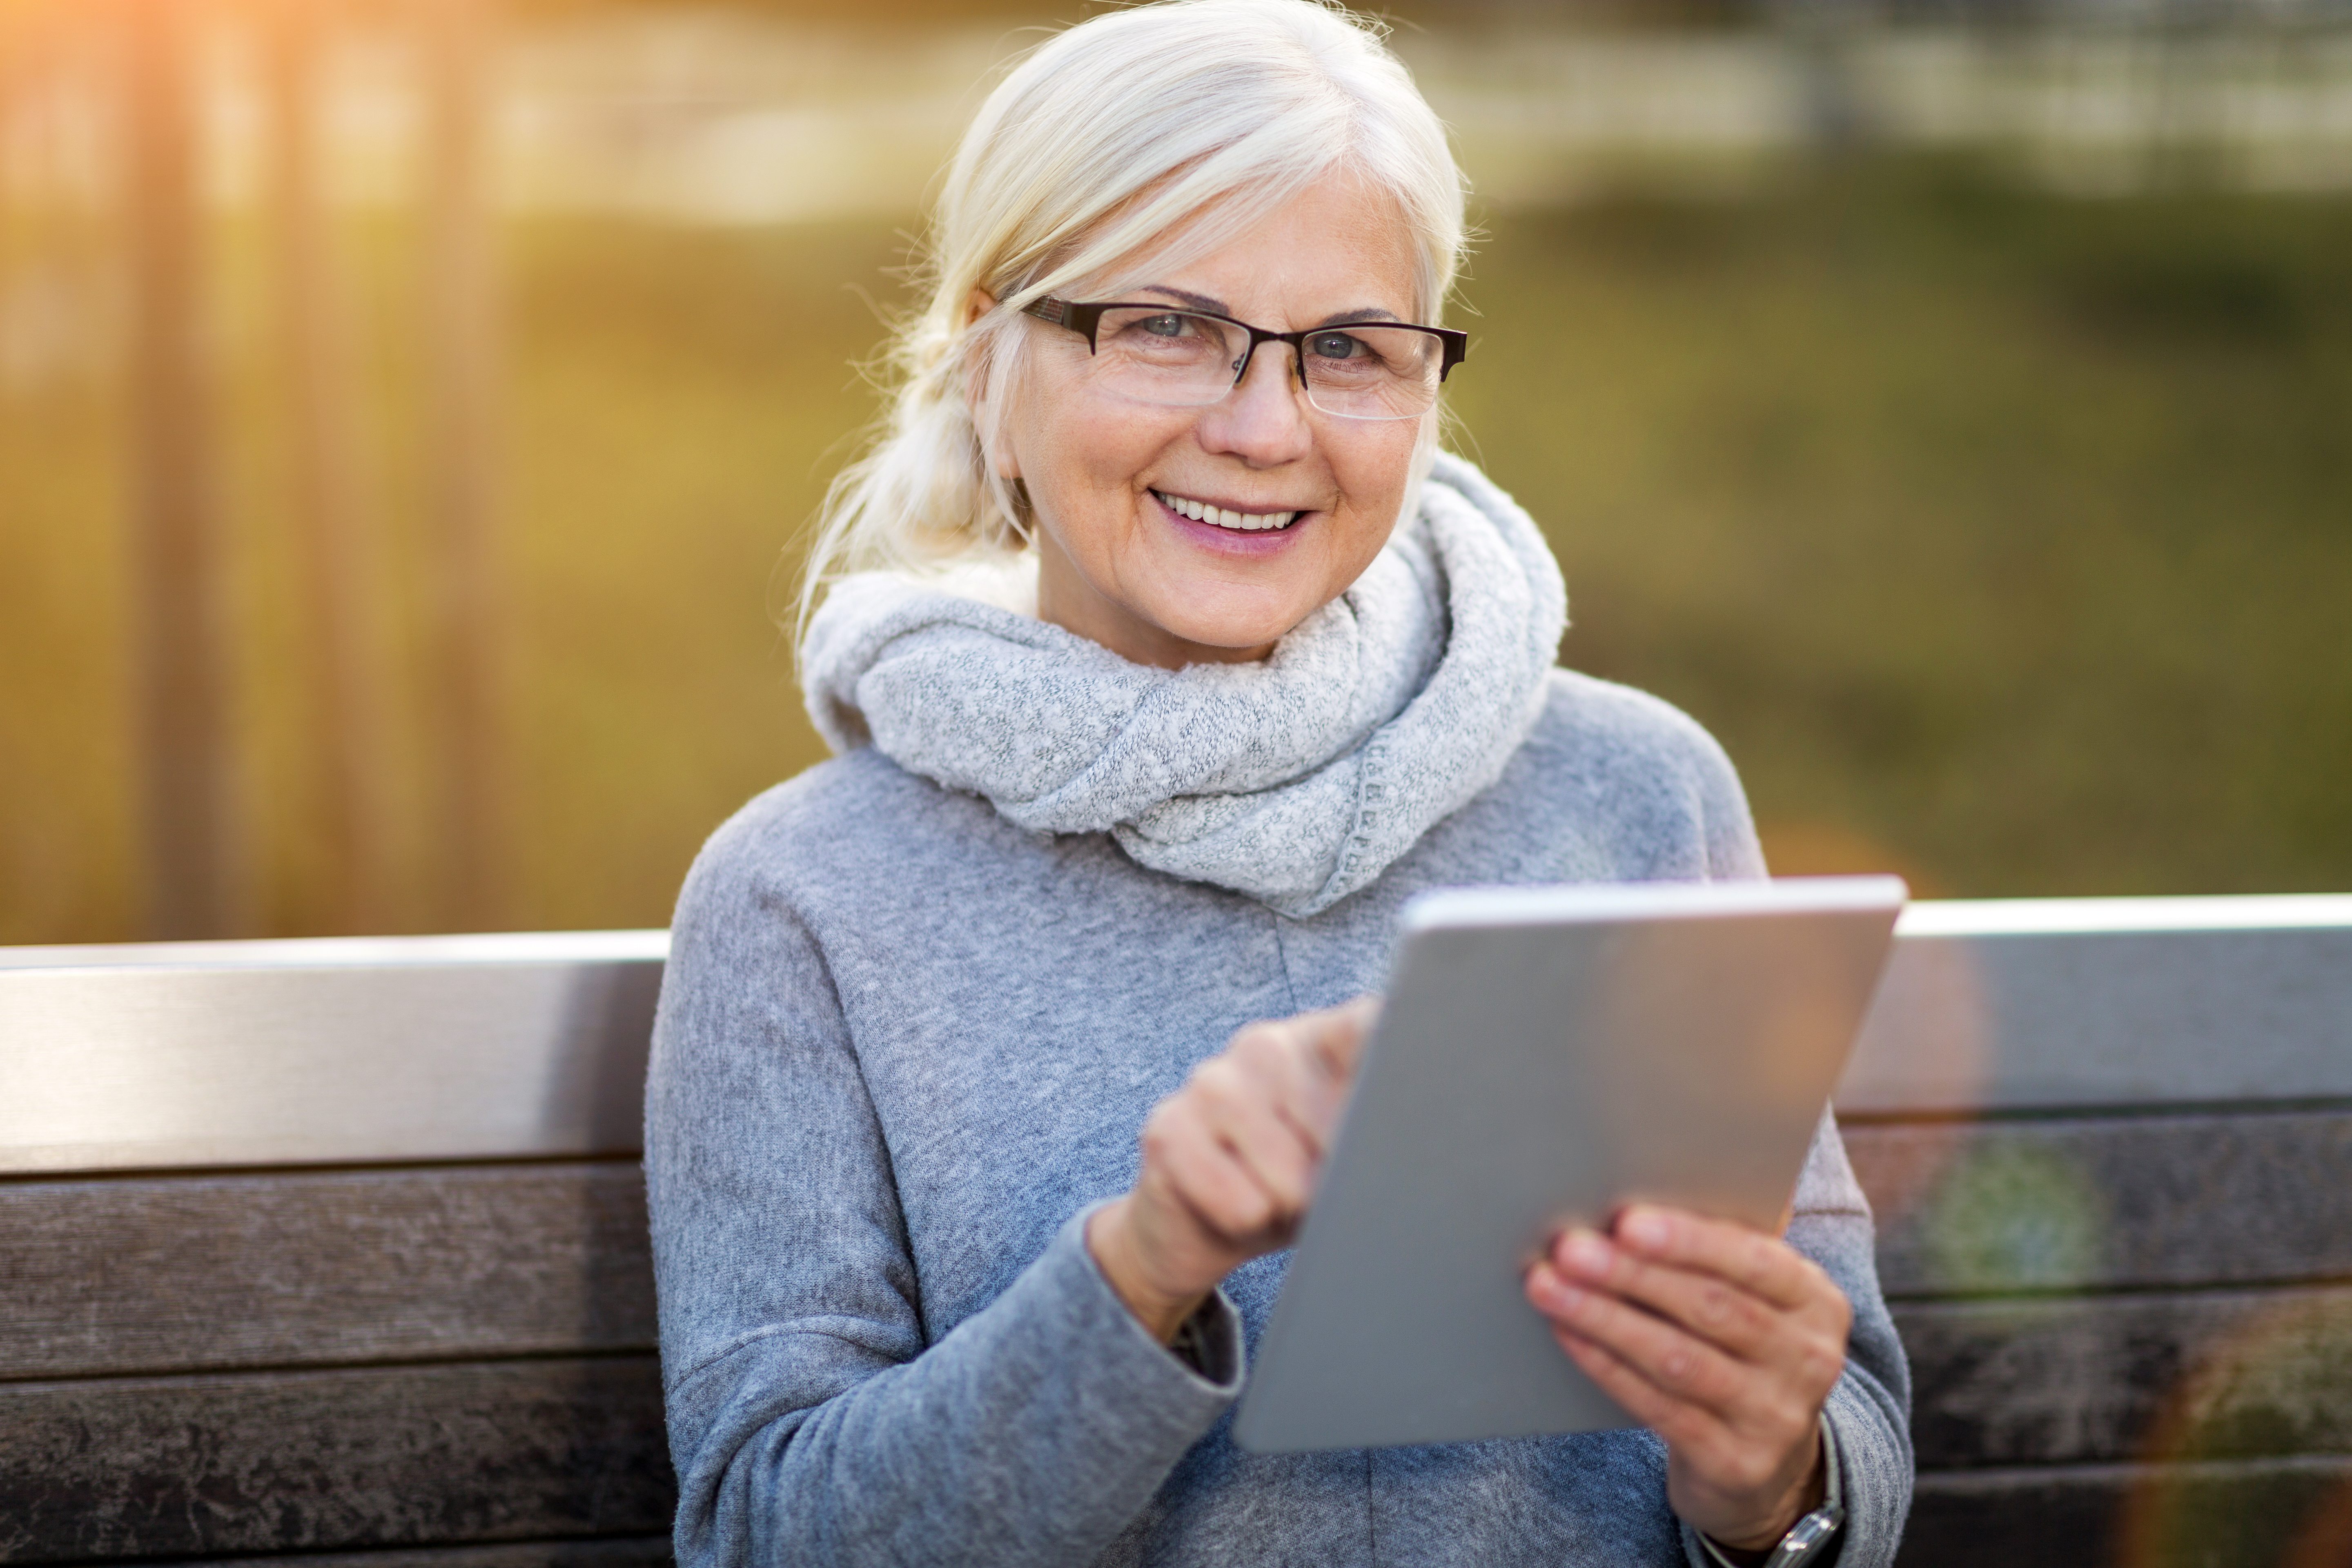 How to Make Seniors Comfortable with Technology